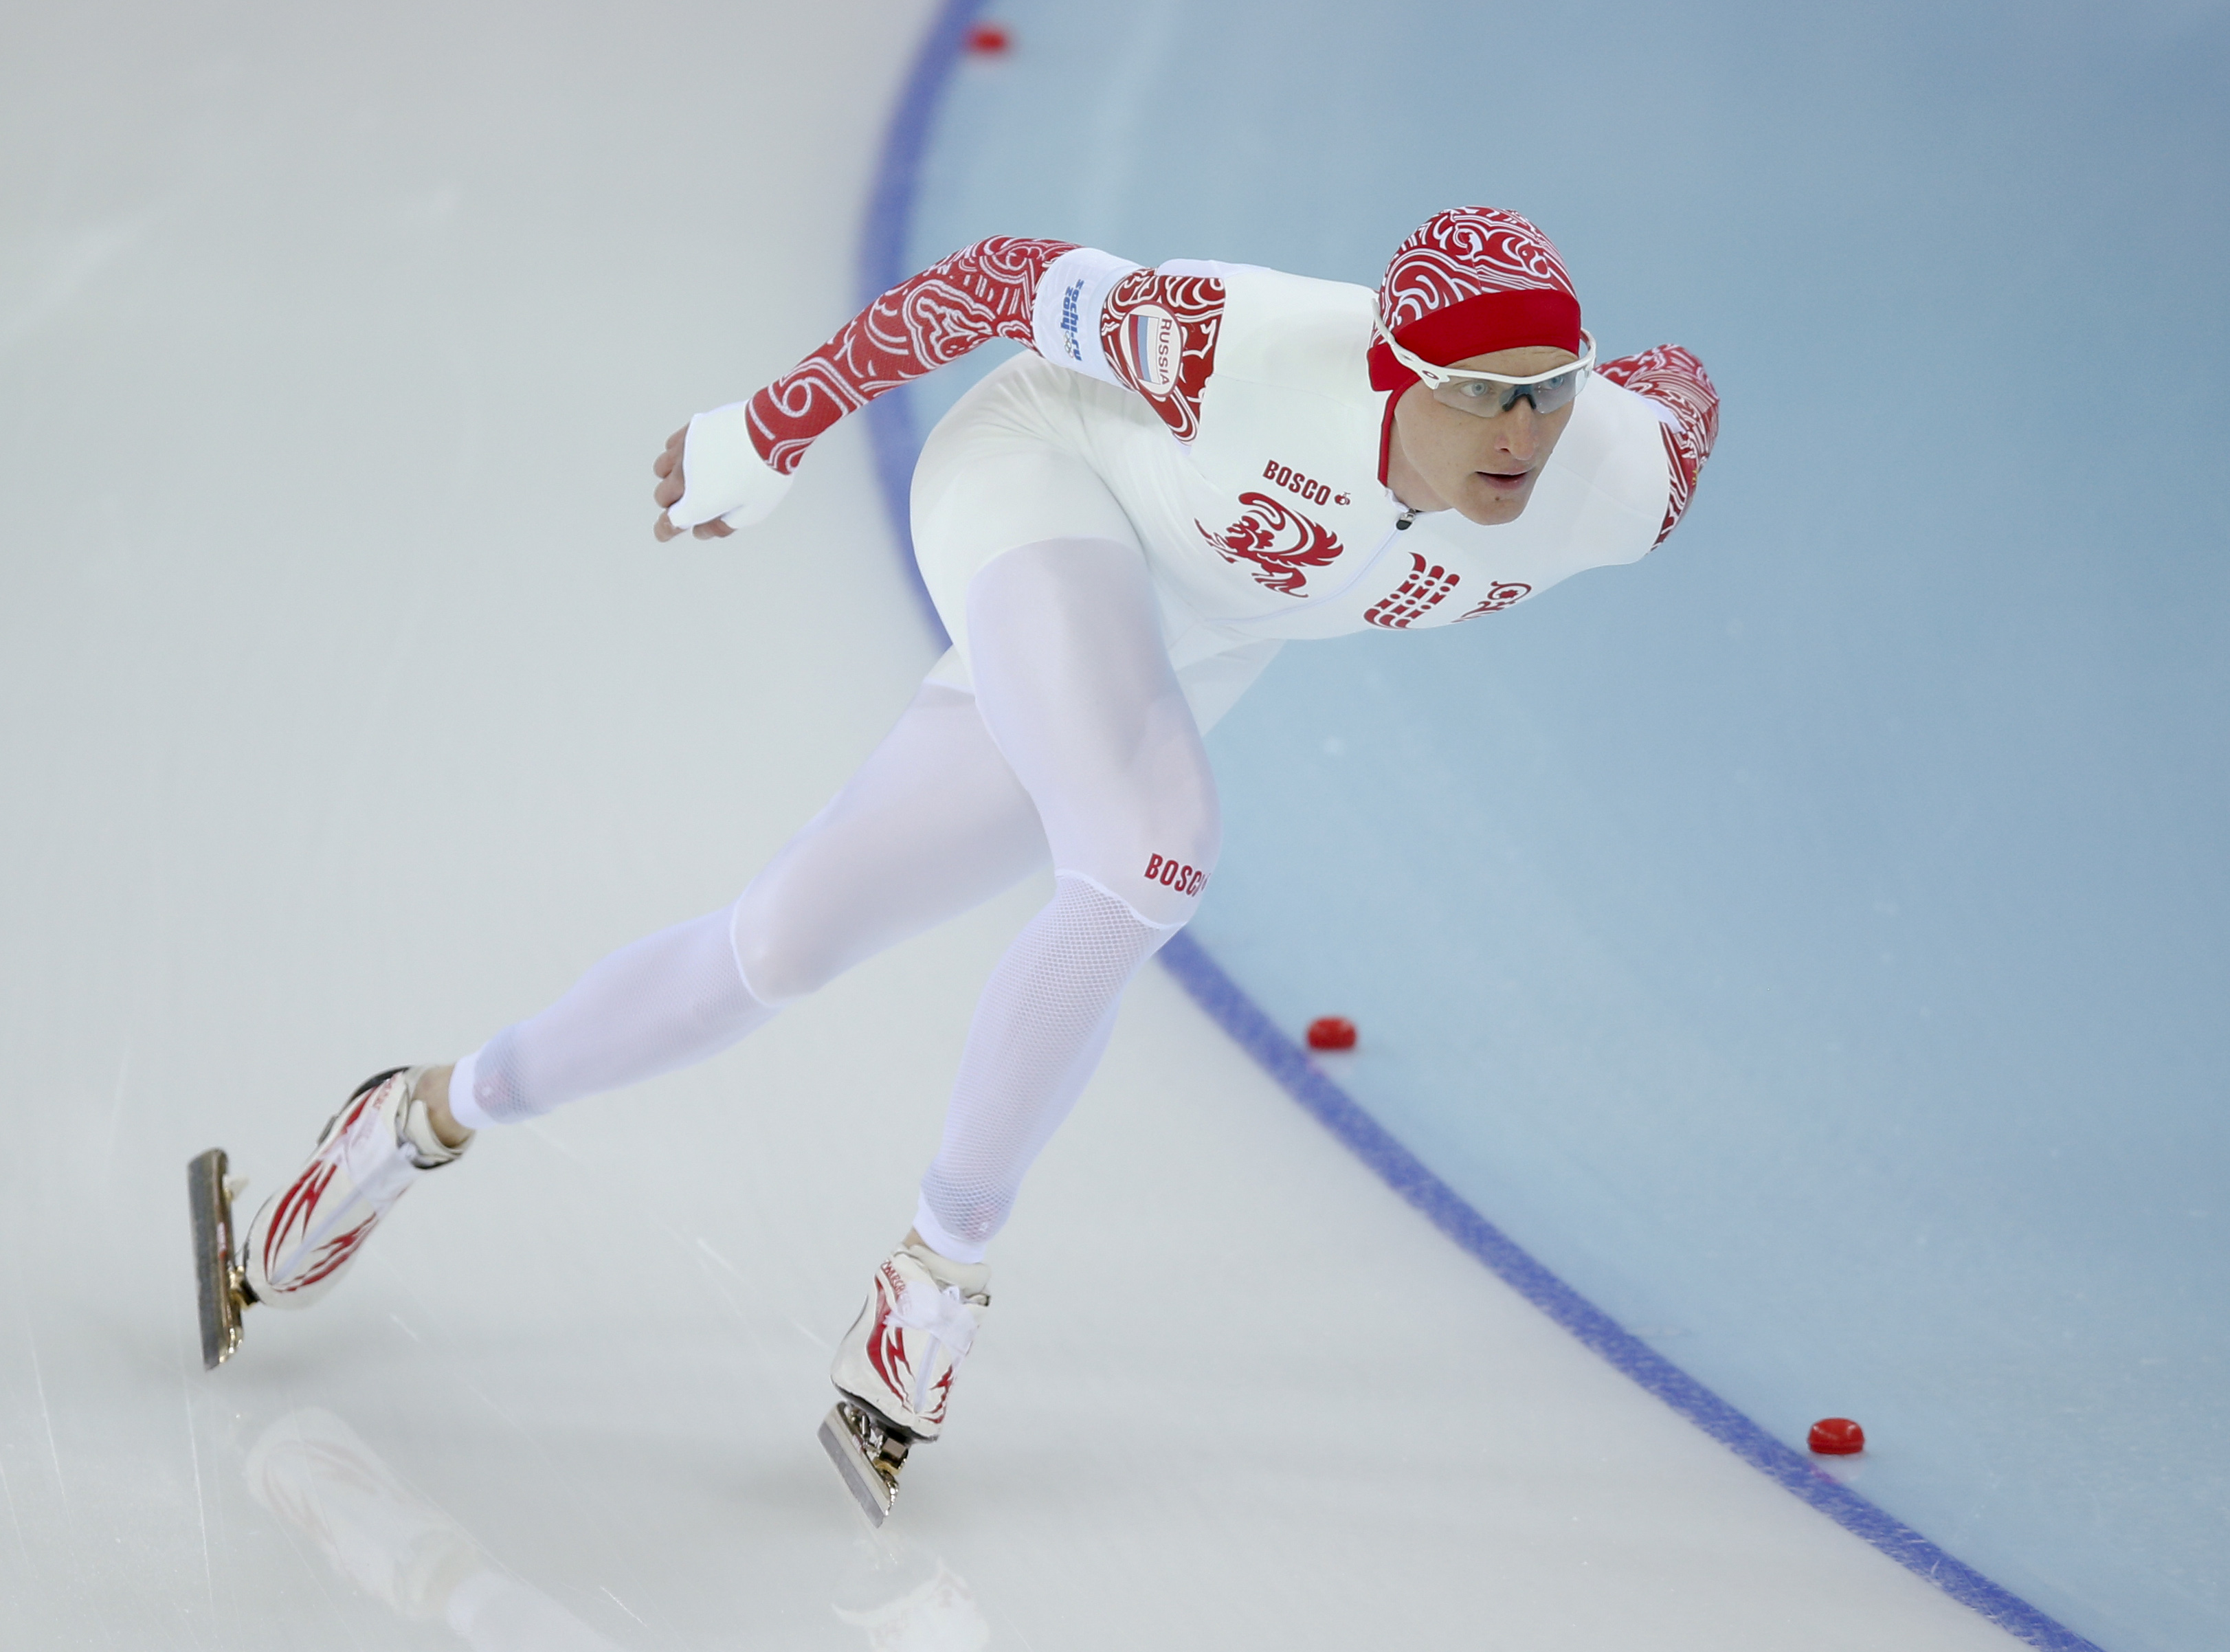 Russia's Ivan Skobrev competes in the men's 1500-meters race at the Adler Arena Skating Center at the 2014 Winter Olympics, Saturday, Feb. 15, 2014, in Sochi, Russia. (AP Photo/Pavel Golovkin)